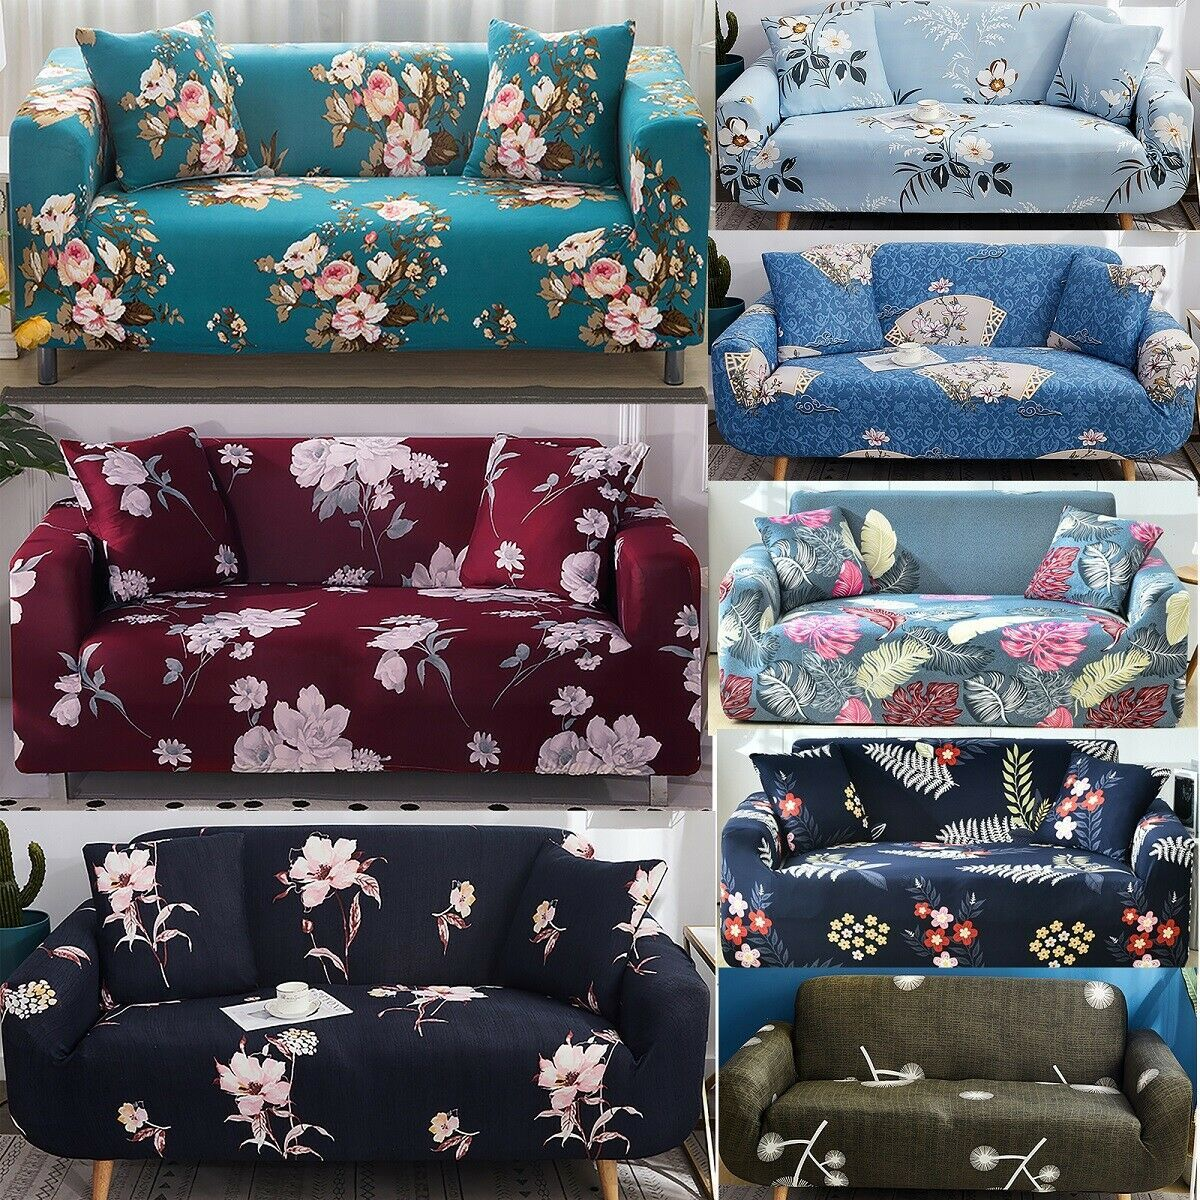 Easy Fit Stretch Floral Sofa Covers Armchair 1 2 3 4 Seater Chair Couch Cover Us Kitchen Sofa Ideas Of Kitchen Sofa K In 2020 Floral Sofa Sofa Covers Couch Covers